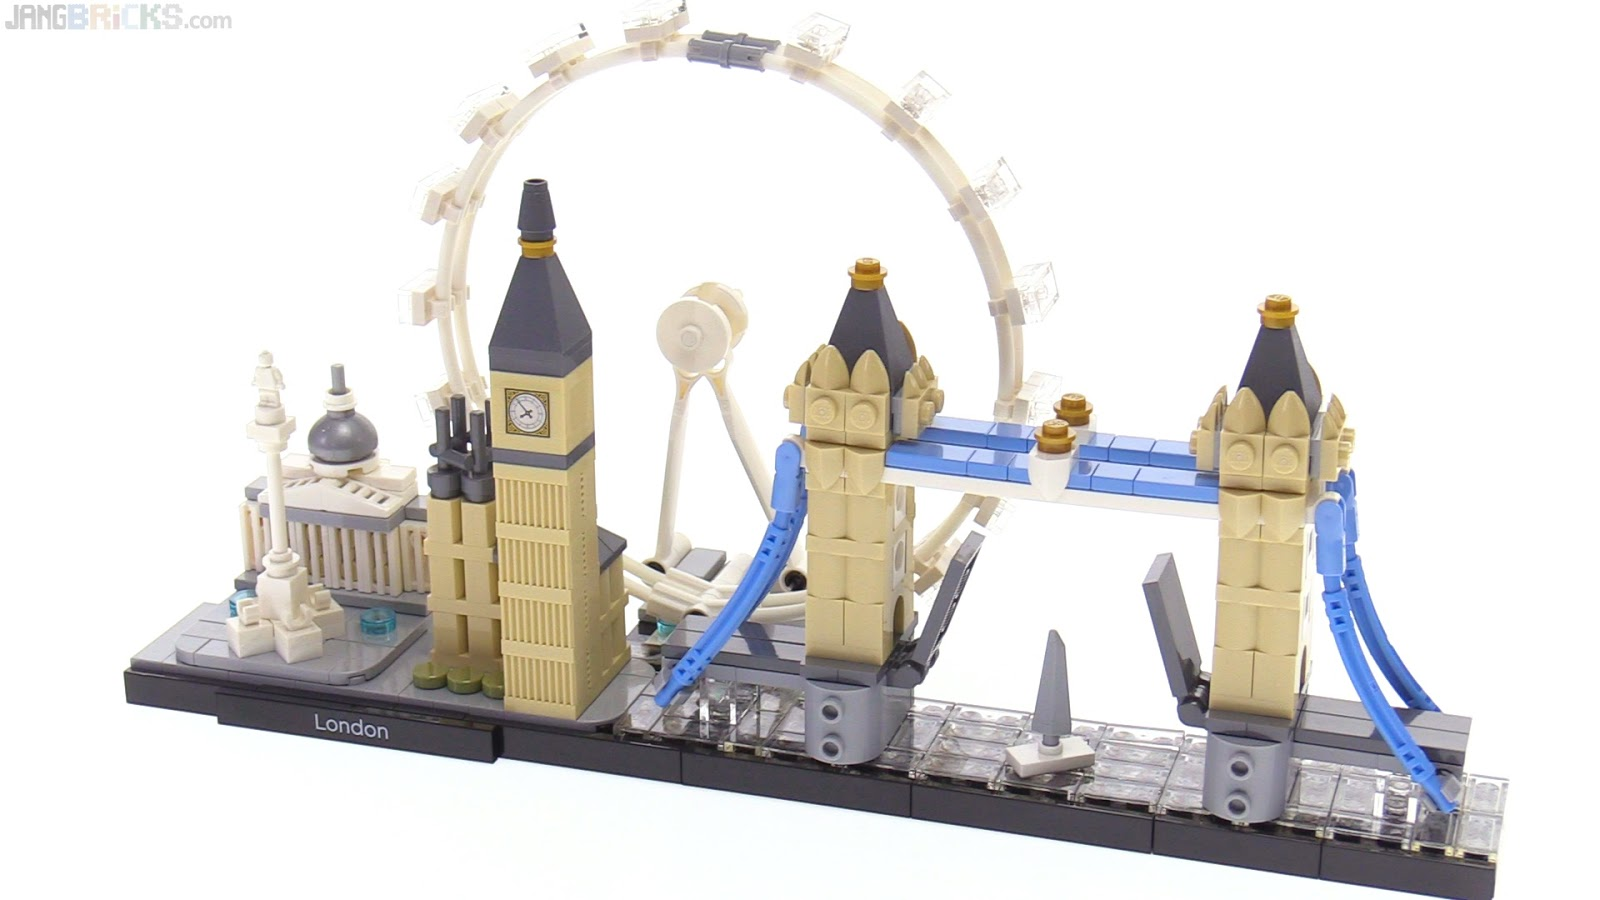 Jangbricks lego reviews mocs december 2016 for Architecture lego